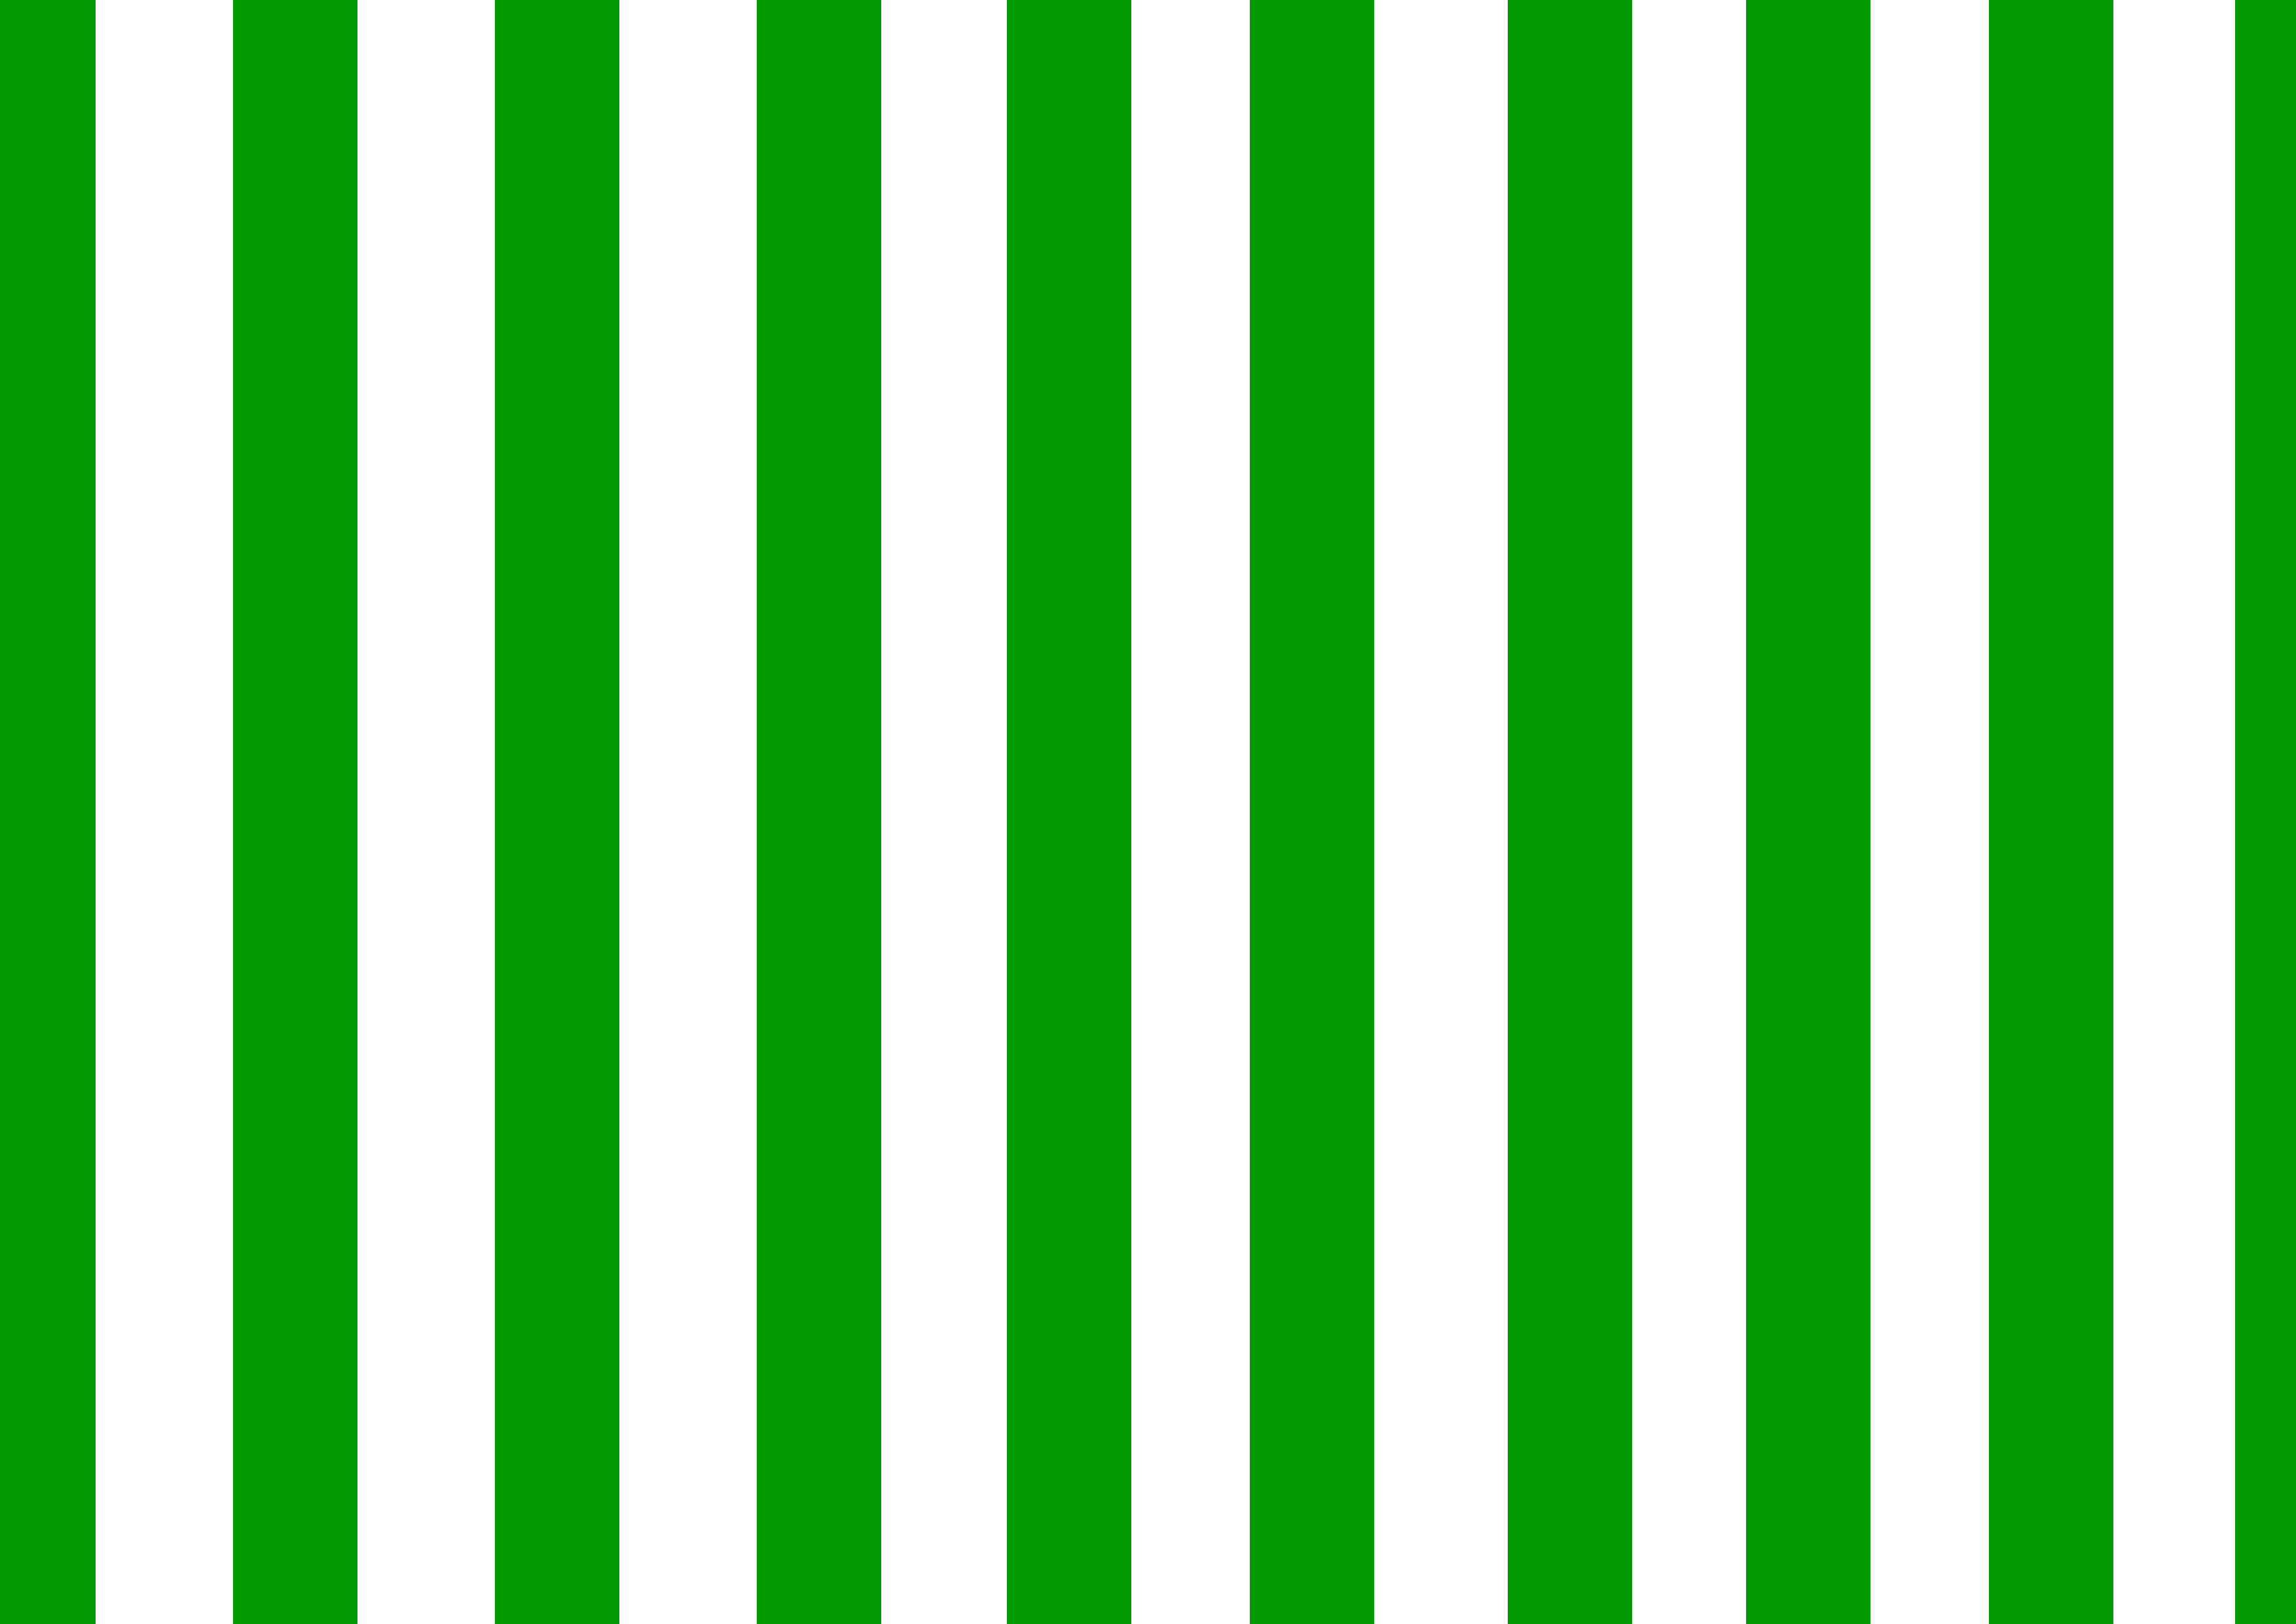 47 Green And White Striped Wallpaper